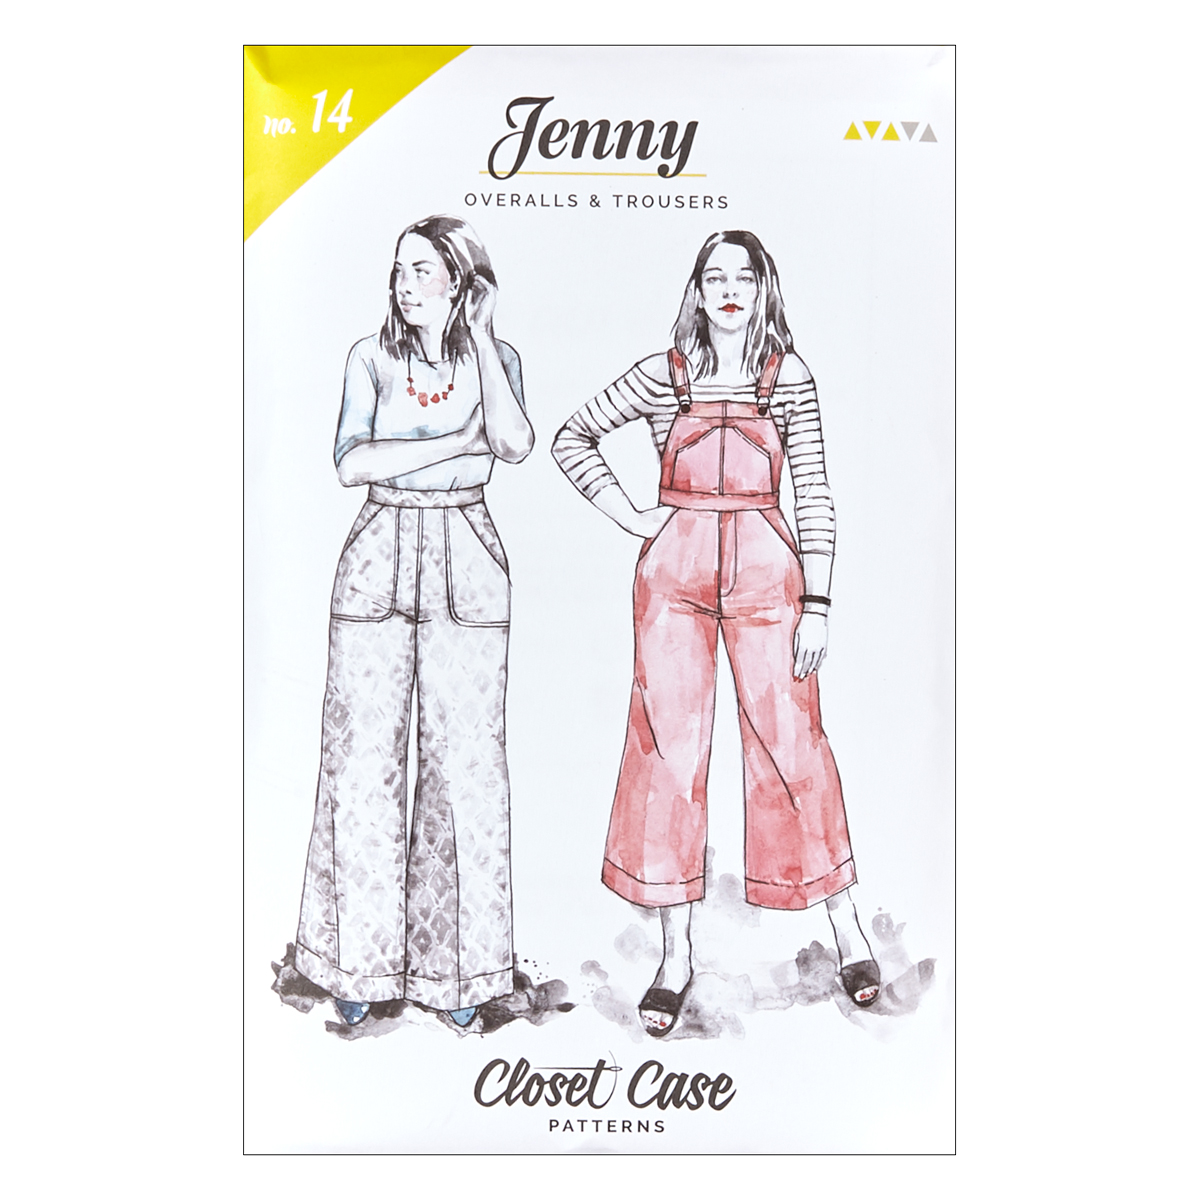 1940s Sewing Patterns – Dresses, Overalls, Lingerie etc Closet Case Jenny Overalls  Trousers $18.00 AT vintagedancer.com